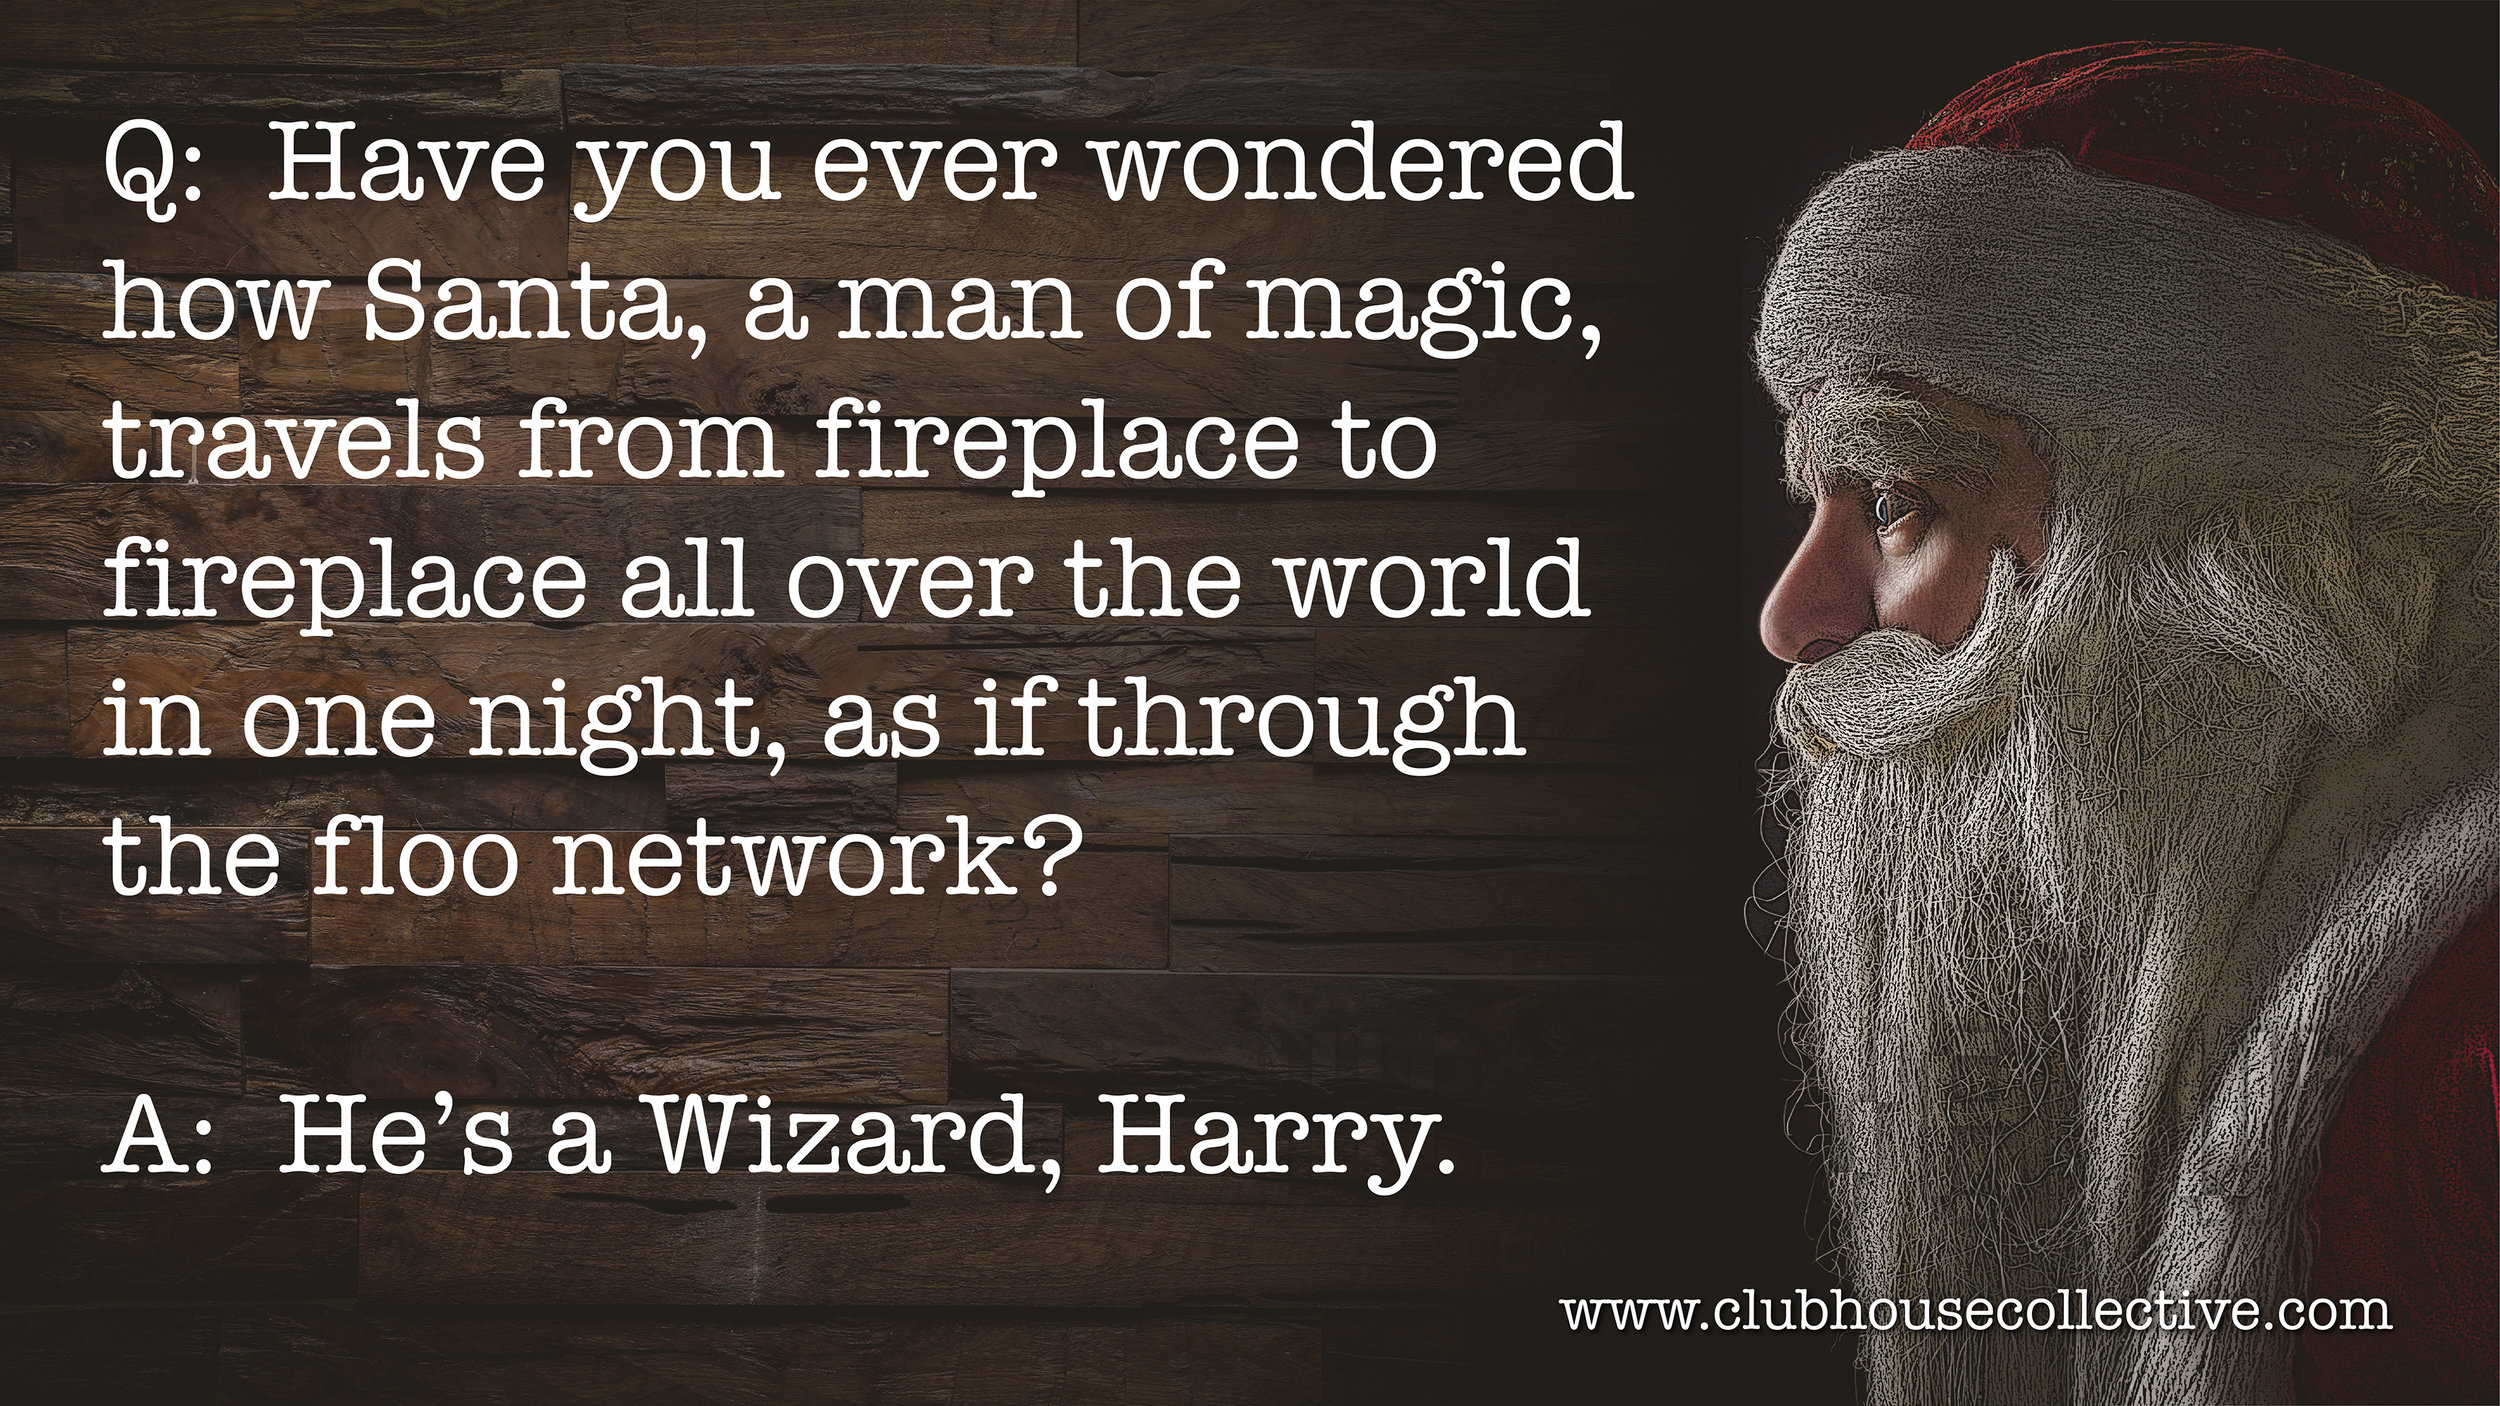 Harry Potter Christmas Wizard. ~ Corinne Jade, ClubHouse Collective